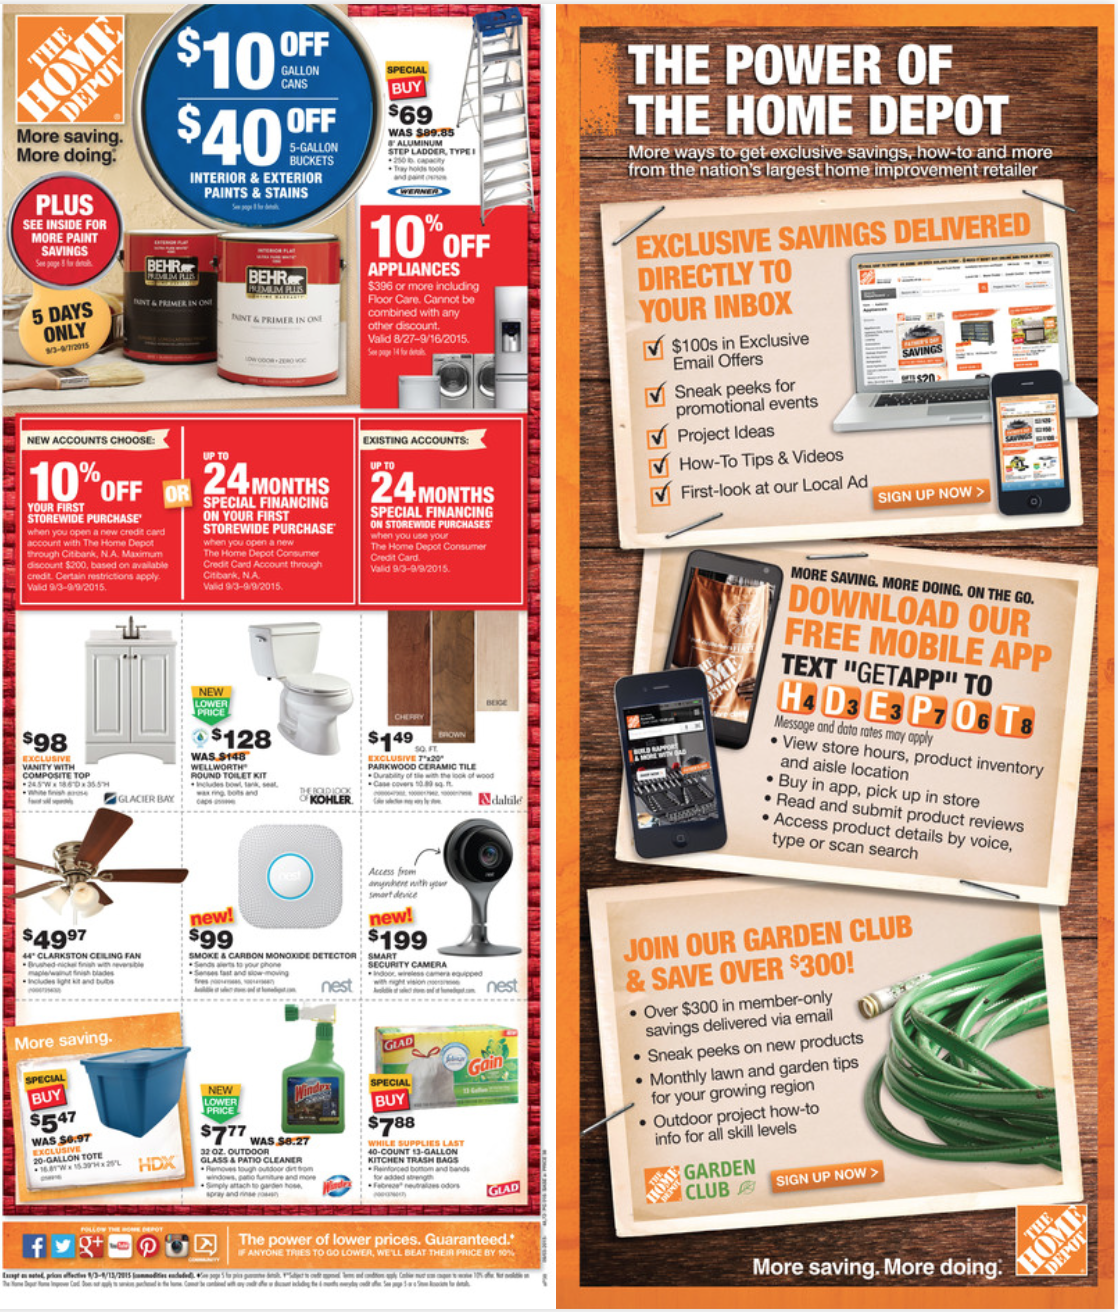 Today's top Ace Hardware coupon: 20% Off The Grommet. Get 9 coupons for